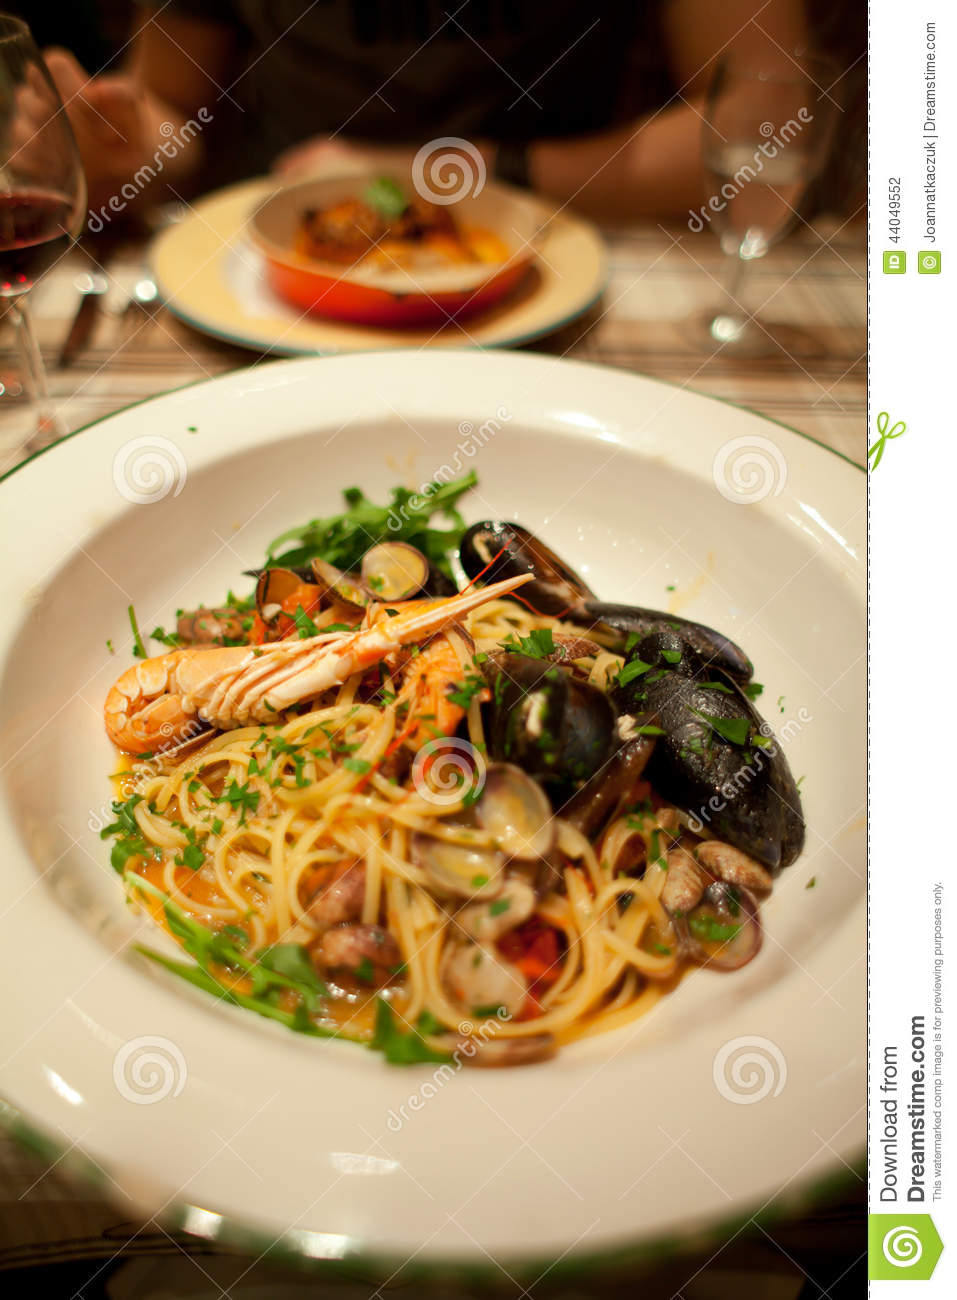 Italian Pasta With Mussels Stock Photo - Image: 44049552